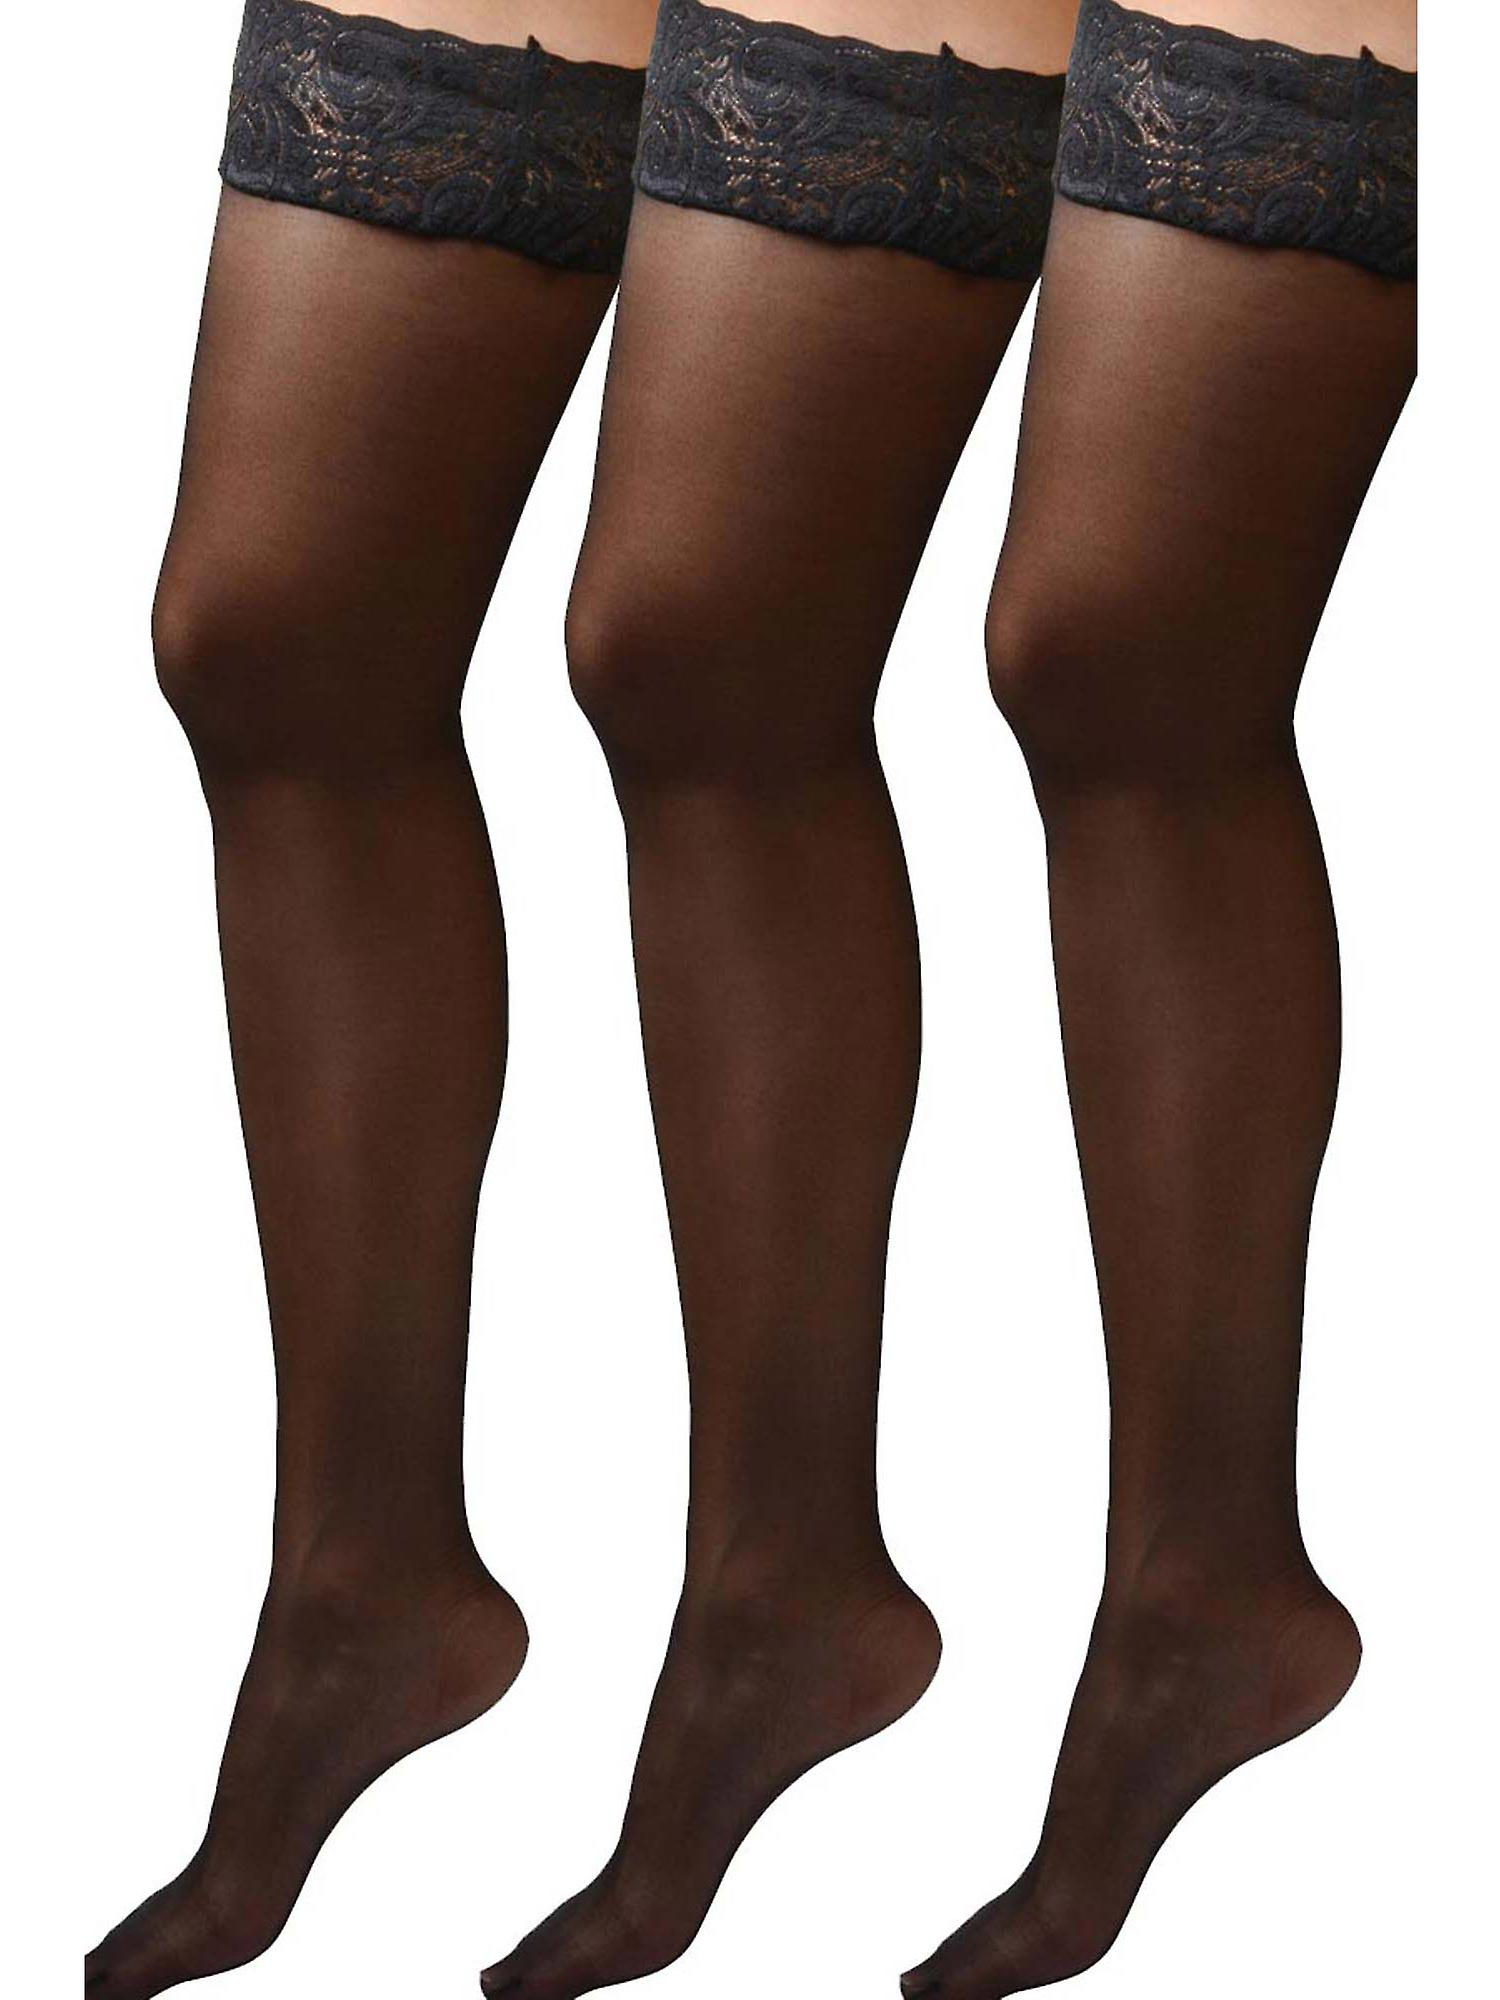 ae1969d55 Womens Plus Size Hosiery Black Sheer Lace Top Stay Up Silicone Thigh High  Stockings- 3